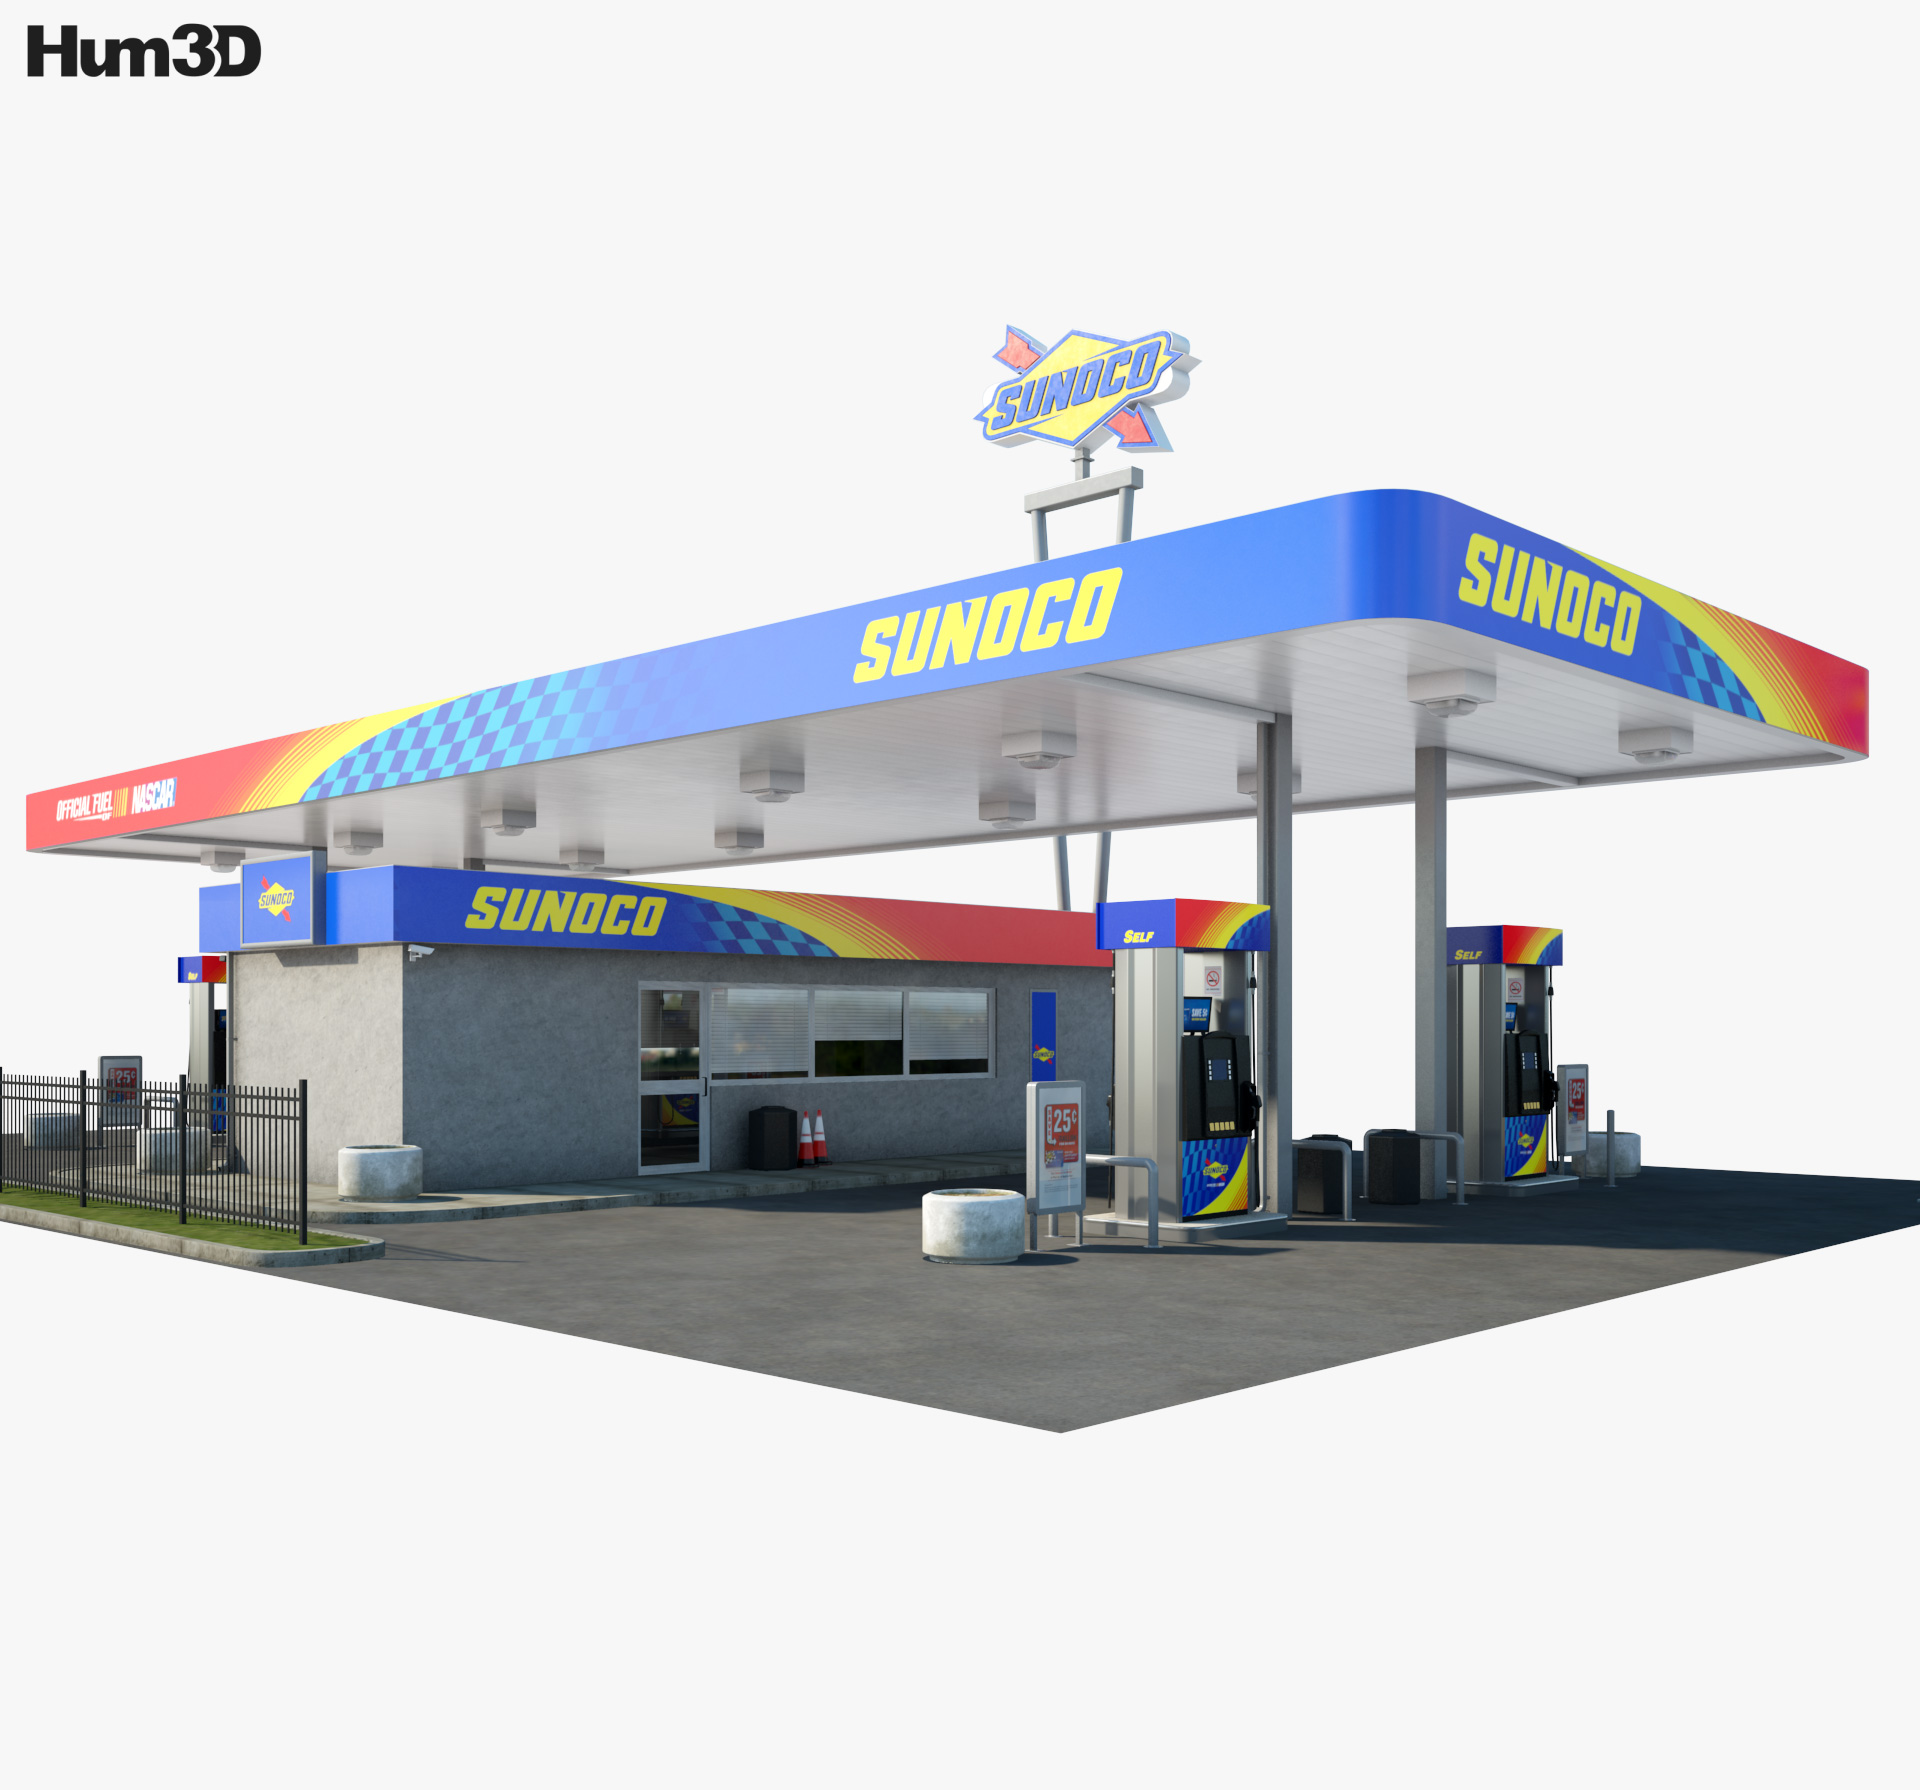 Sunoco gas station 001 3d model